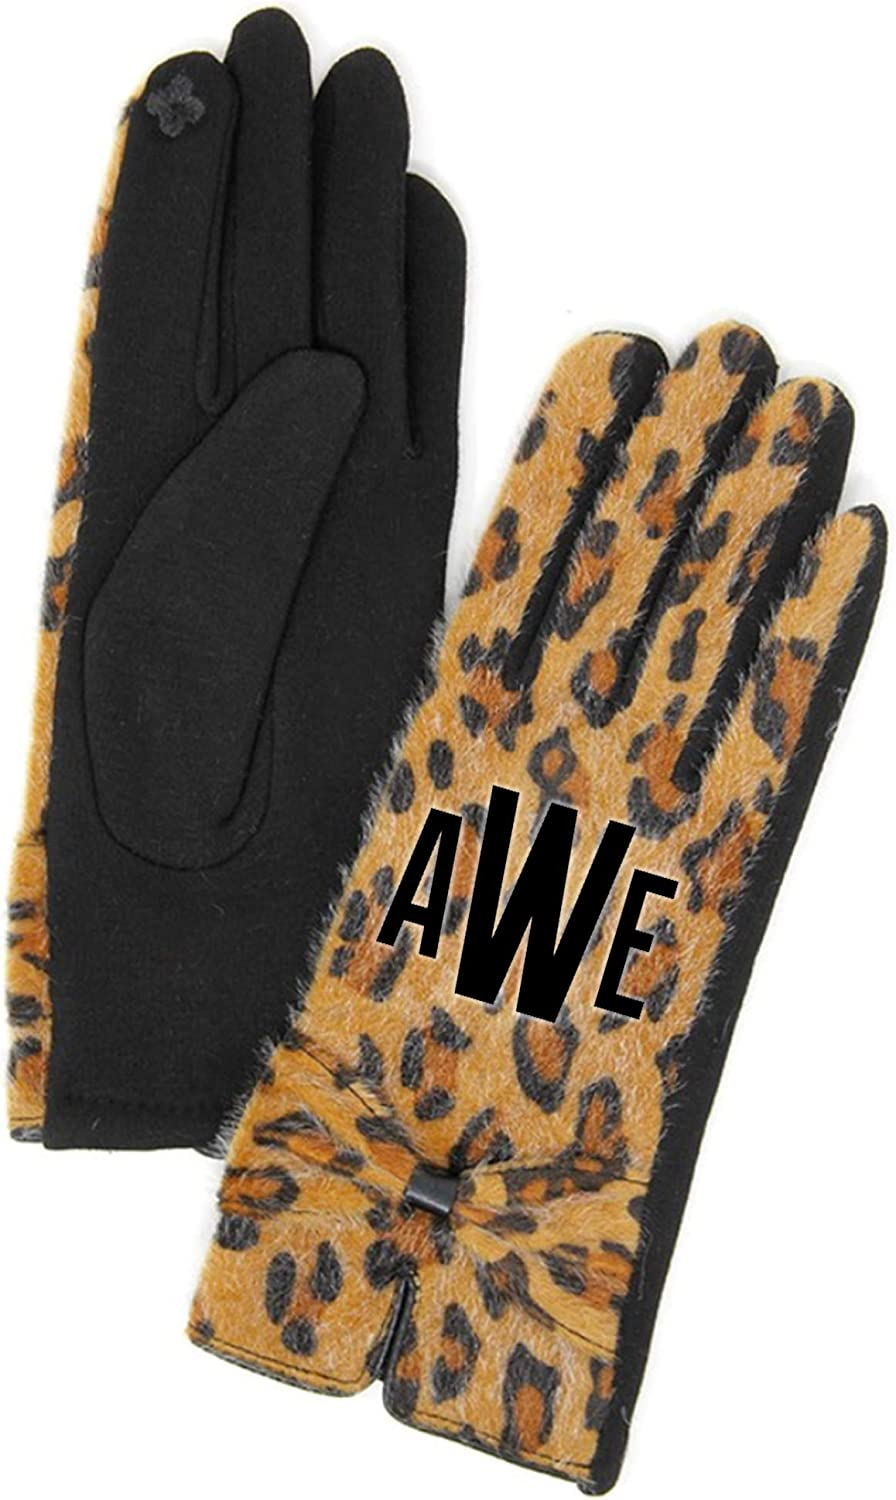 Customized Monogram Warm Leopard Gloves, Personalized Animal Print Smart Touch Gloves, Gift for Her